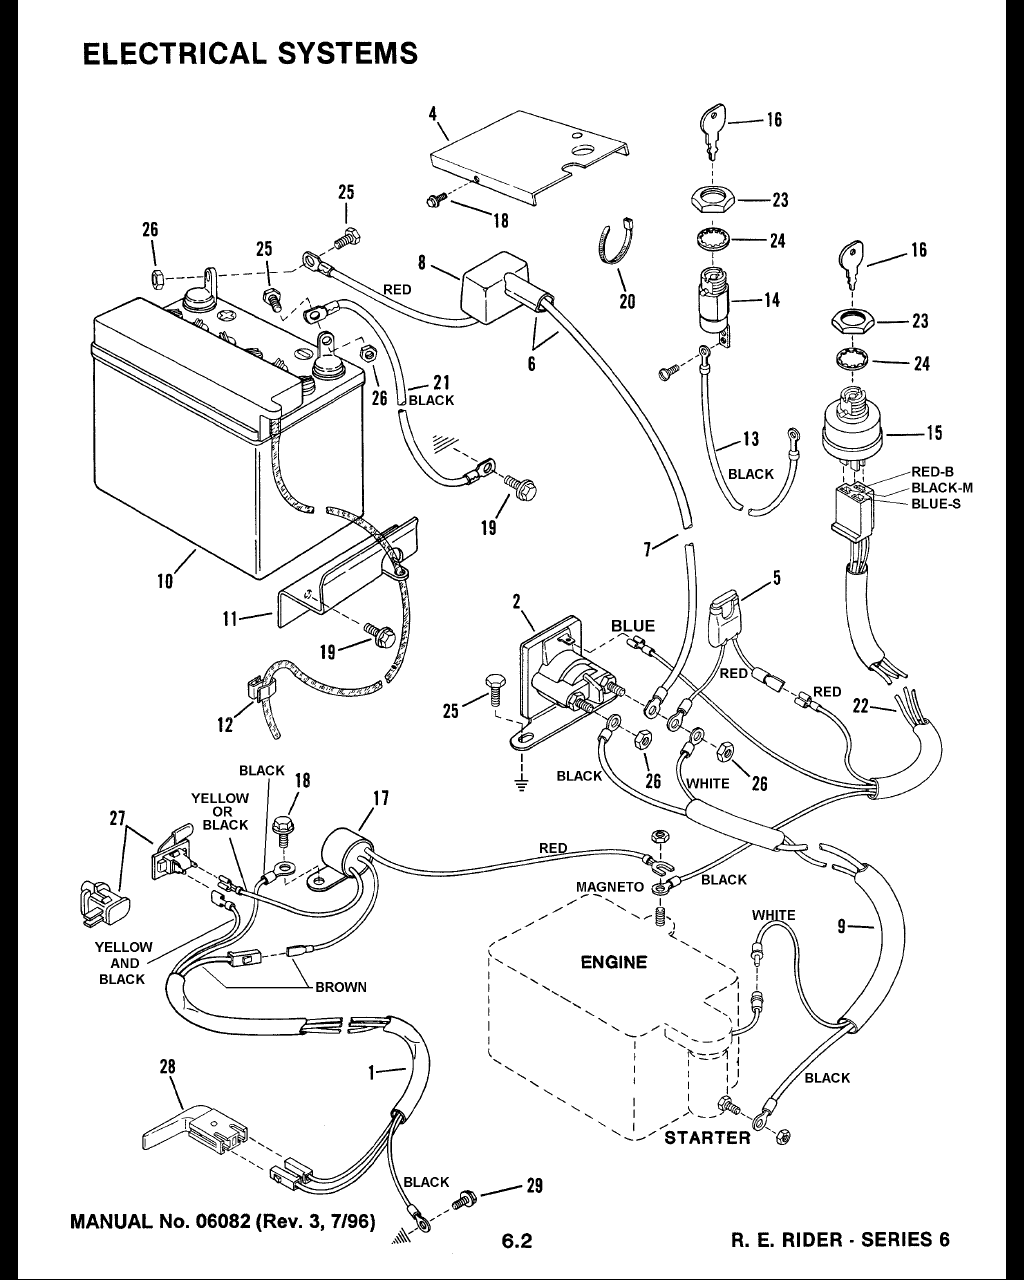 Snapper Re130 Wiring Diagram